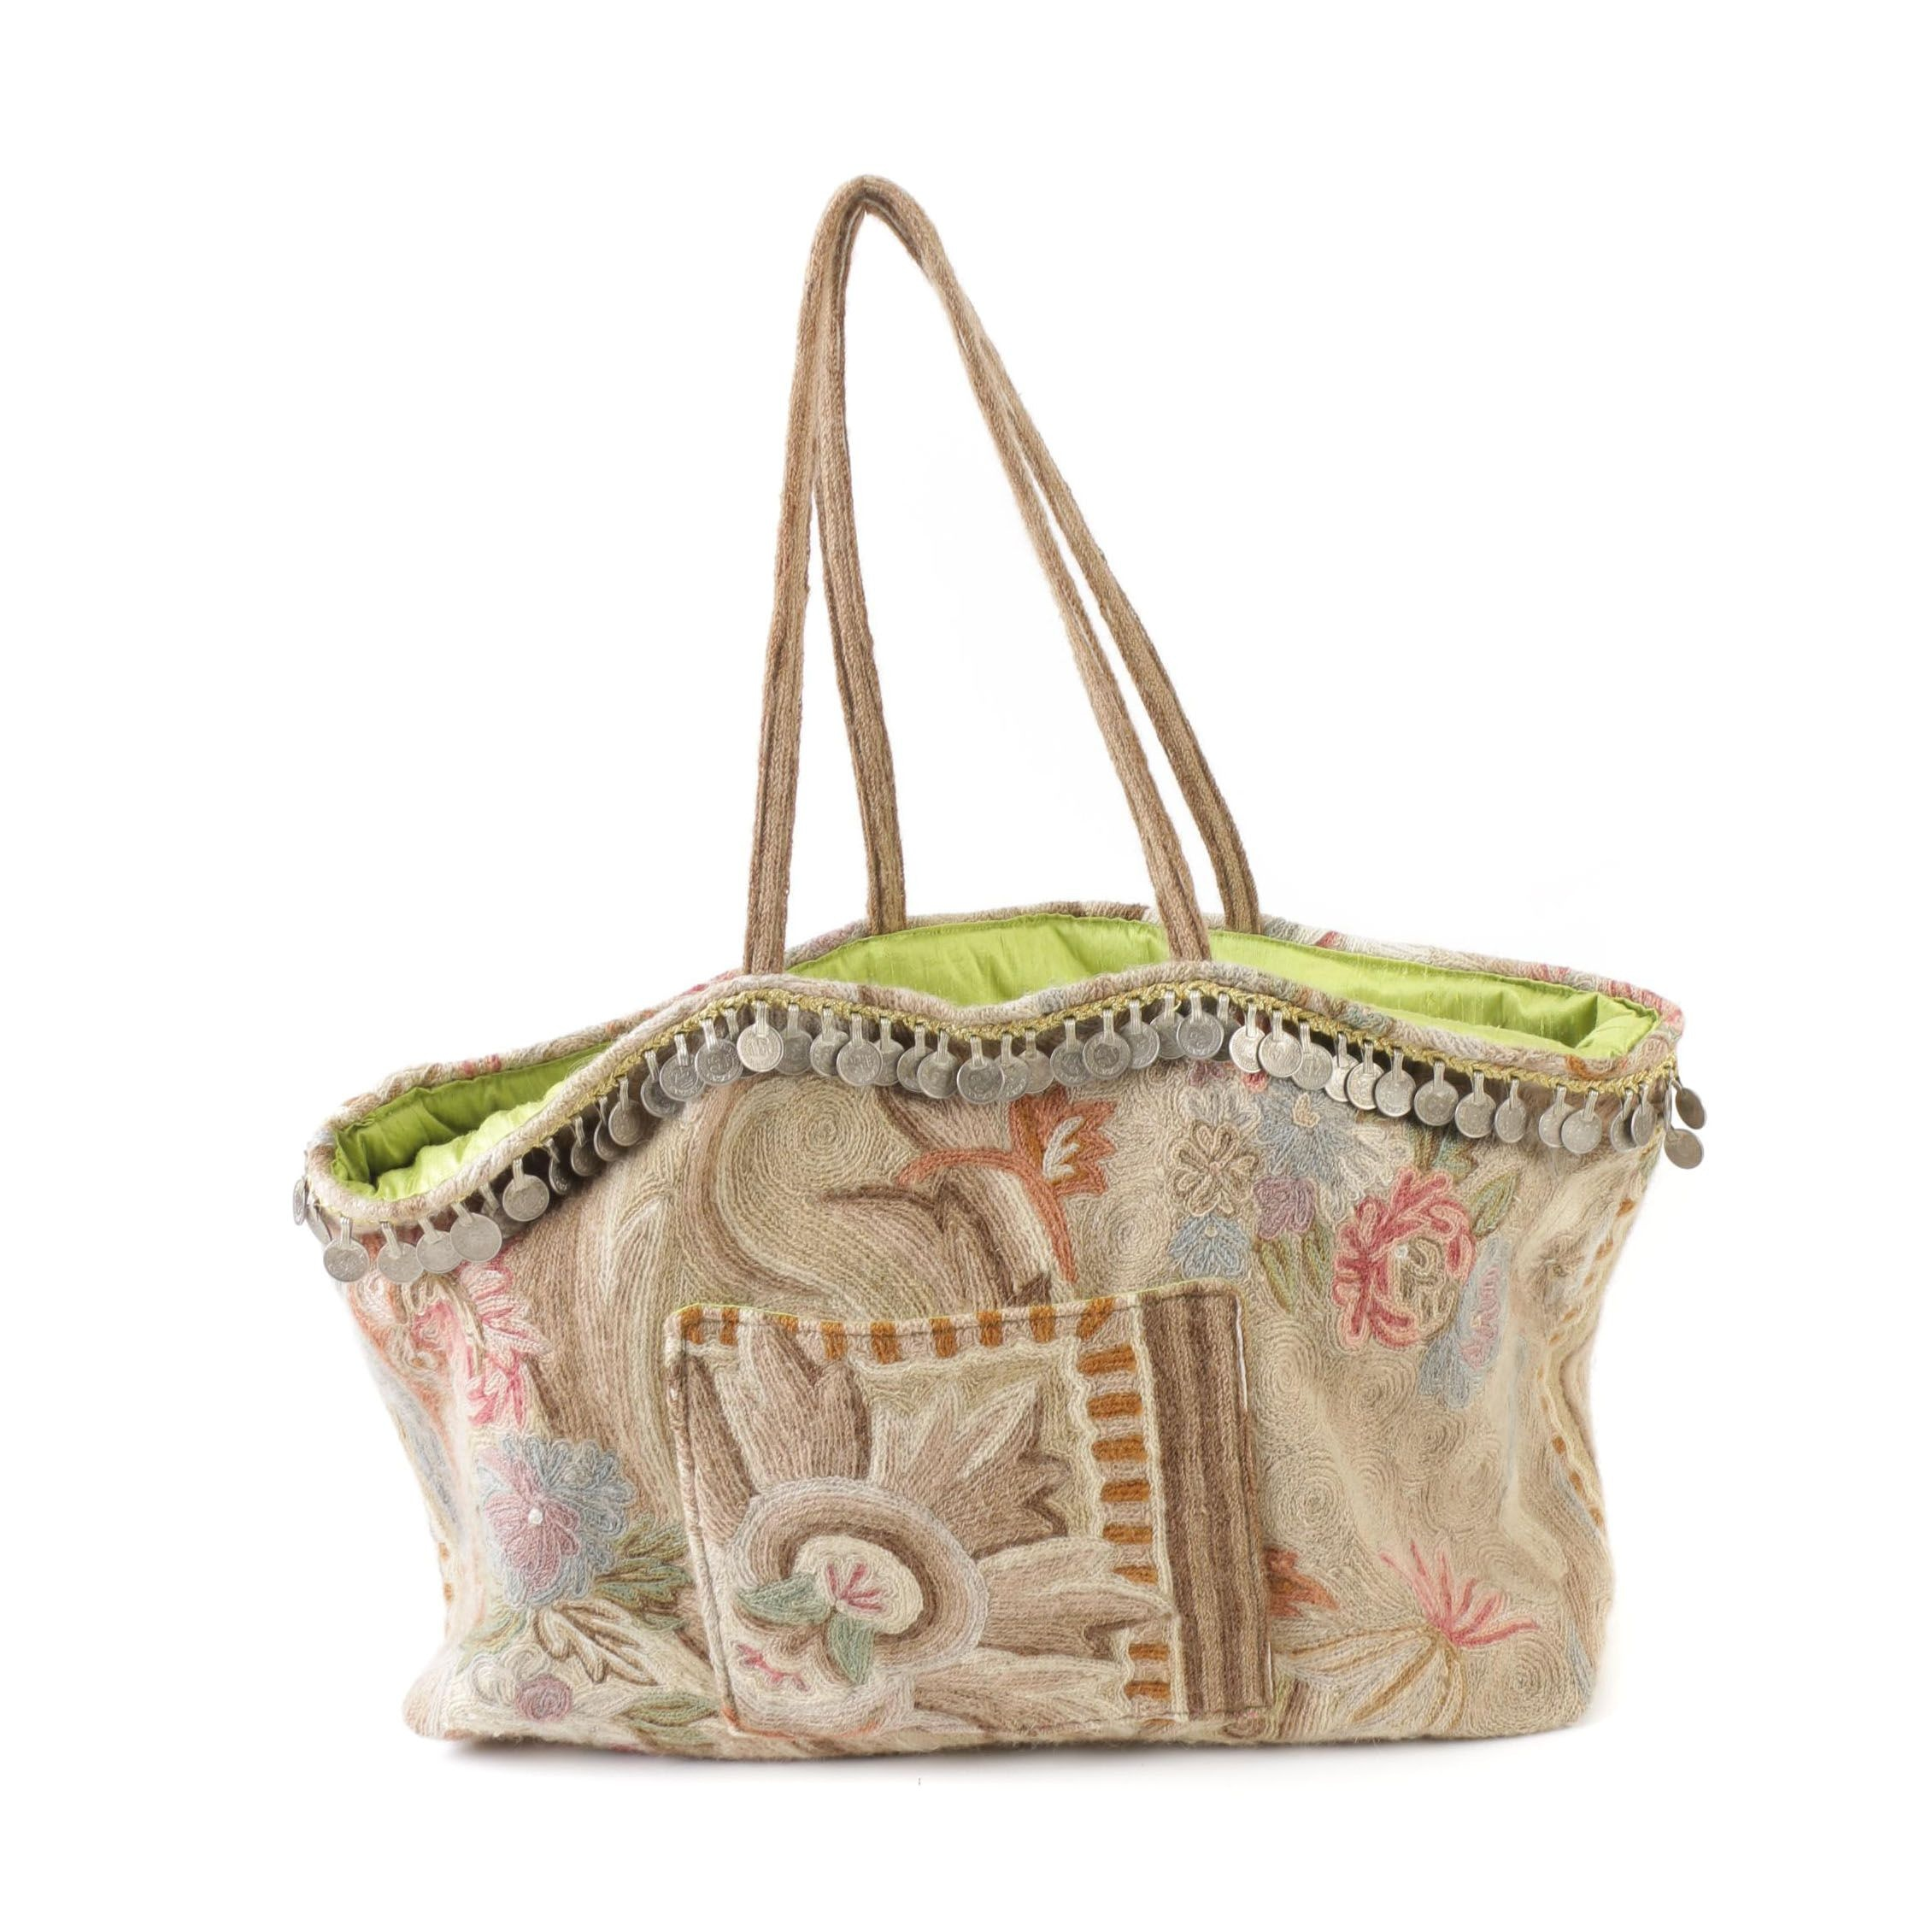 Boho Style Floral Tote Bag with Pakistani Paisa Coin Accents